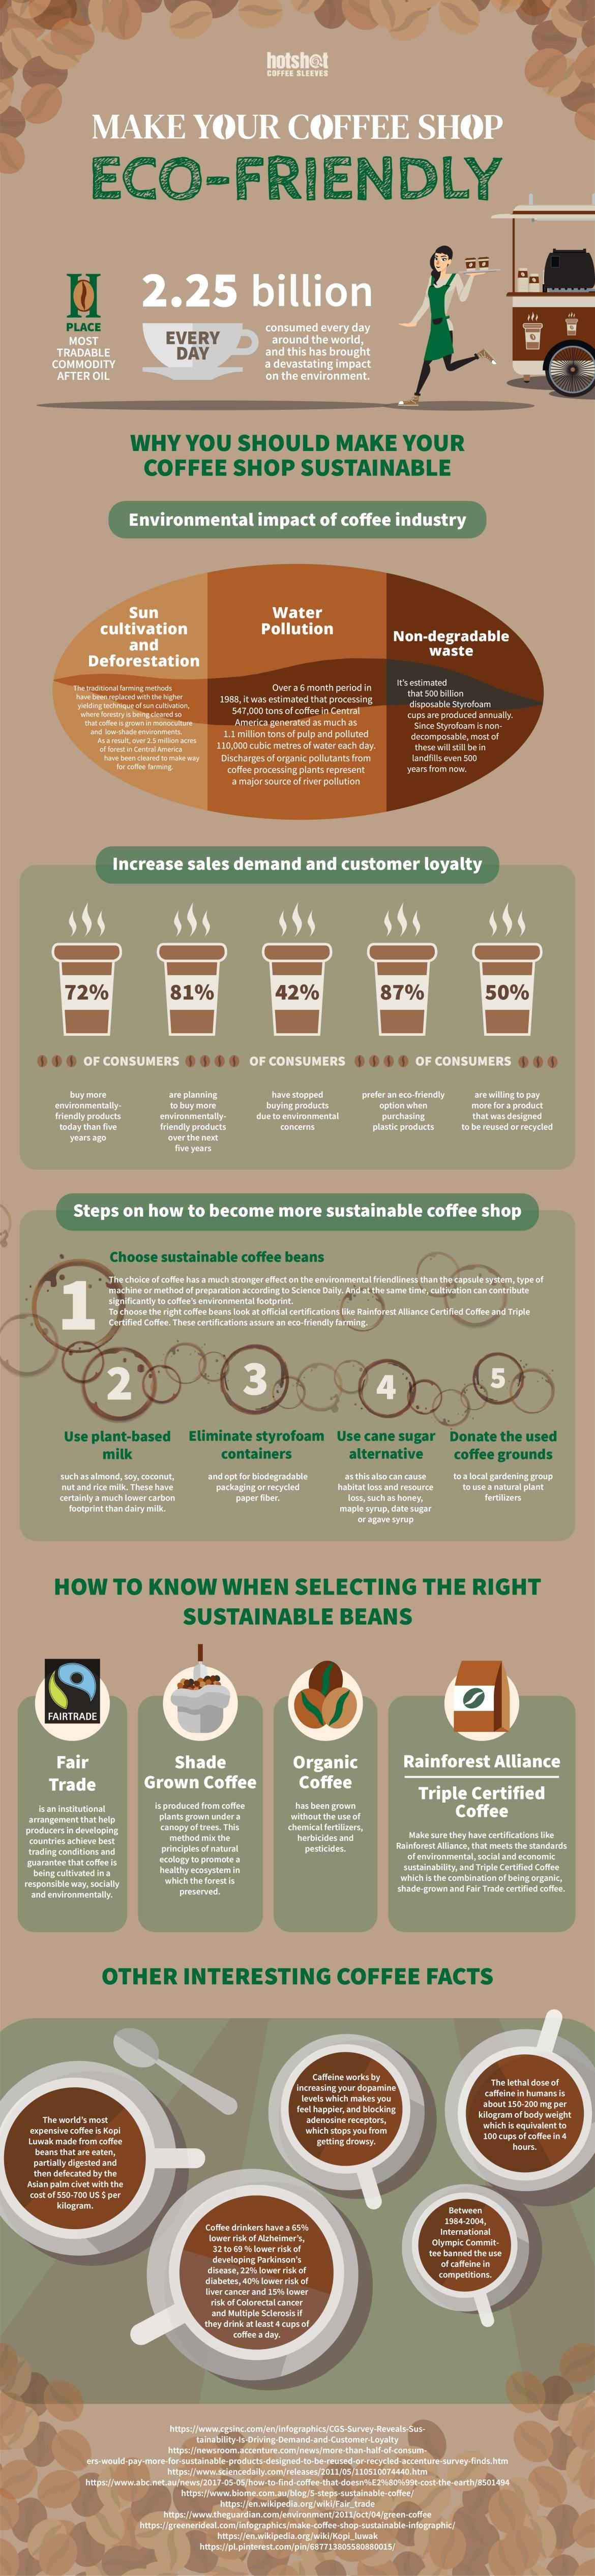 Make Your Coffee Shop More Attractive to Customers